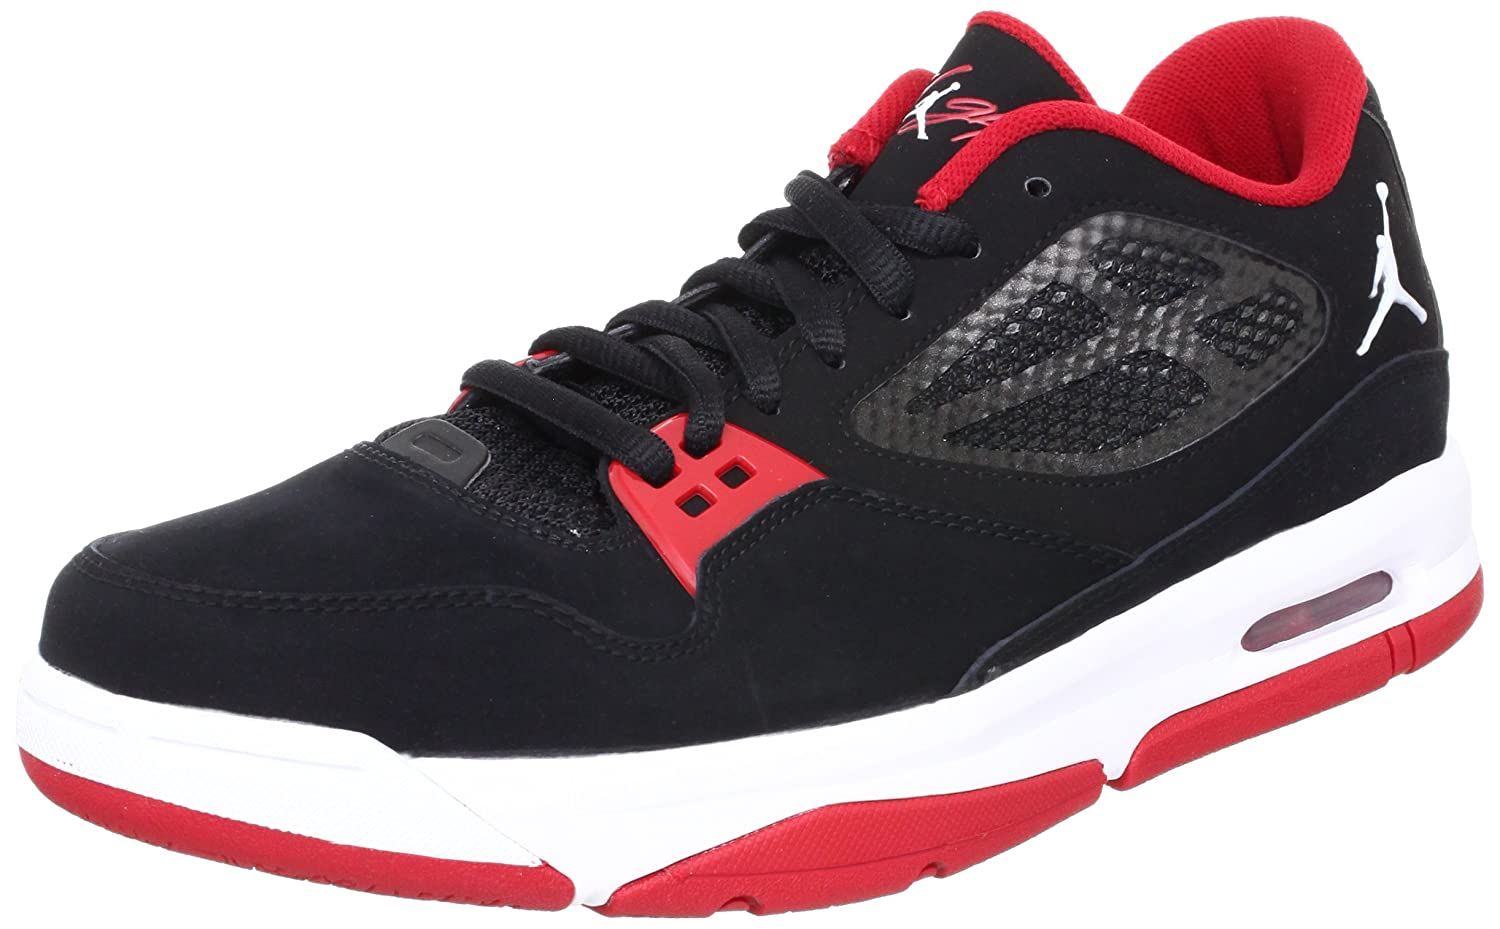 competitive price 268ab f3521 Amazon.com   Nike Jordan Flight 23 RST Low Black Gym Red Bred Mens  Basketball Shoe 525512-001  US size 9.5    Shoes